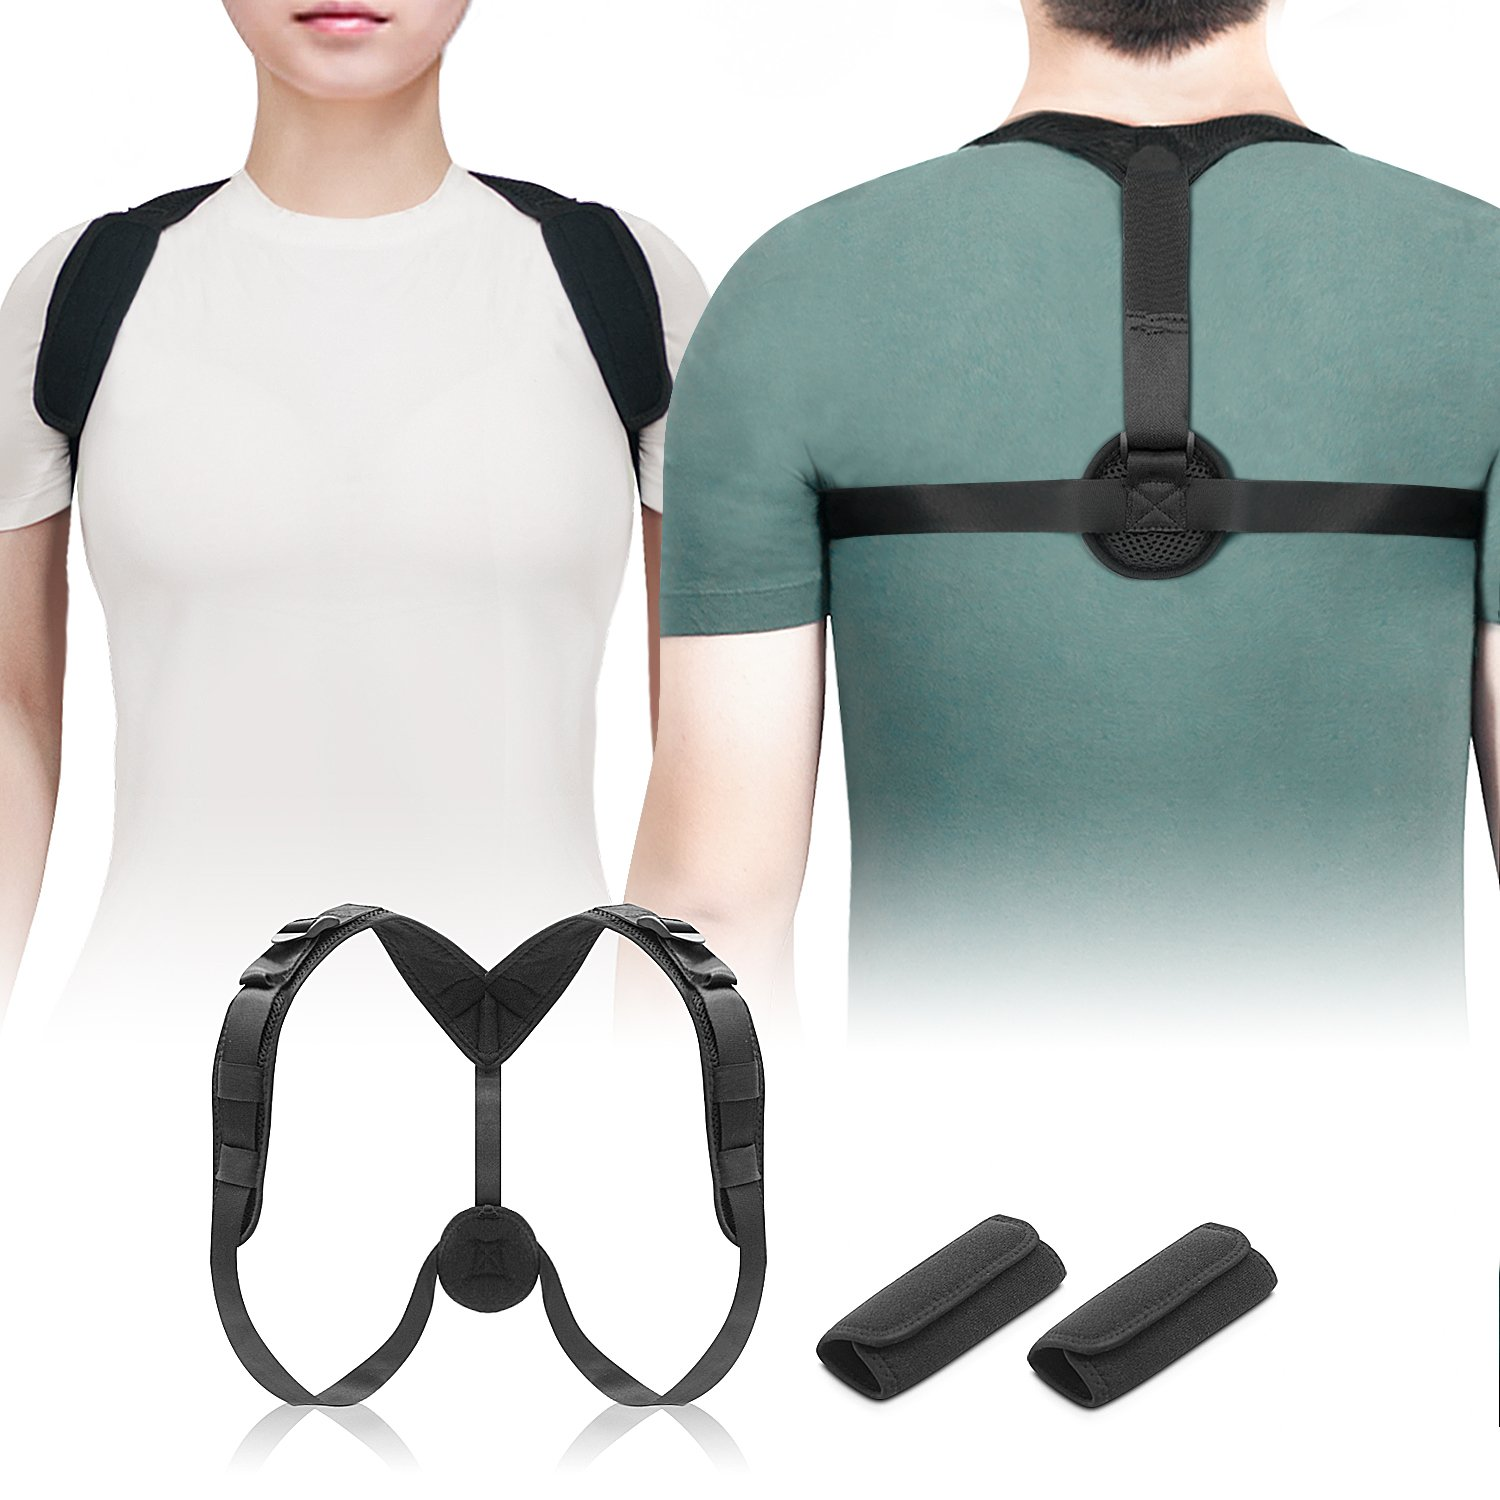 Ostekin Posture Corrector for Men Women [Upgraded], Adjustable Posture Support Brace | Clavicle Support Brace for Hunchback & Slouching, Comfortable & Breathable